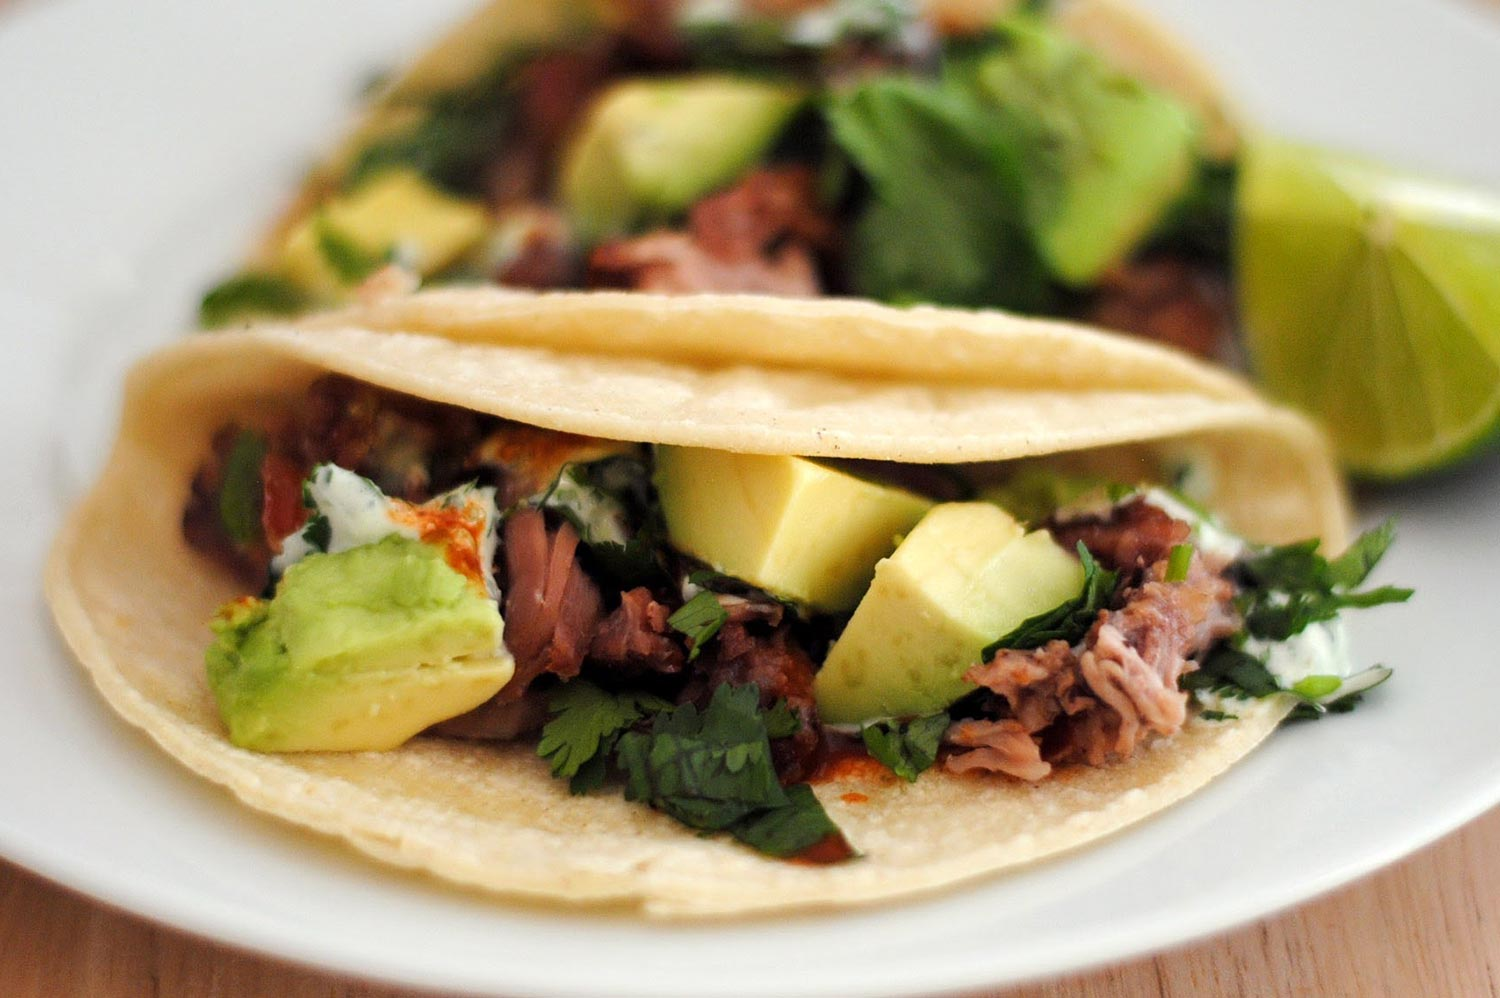 Fried Carnitas Tacos With Zesty Cilantro Lime Sauce